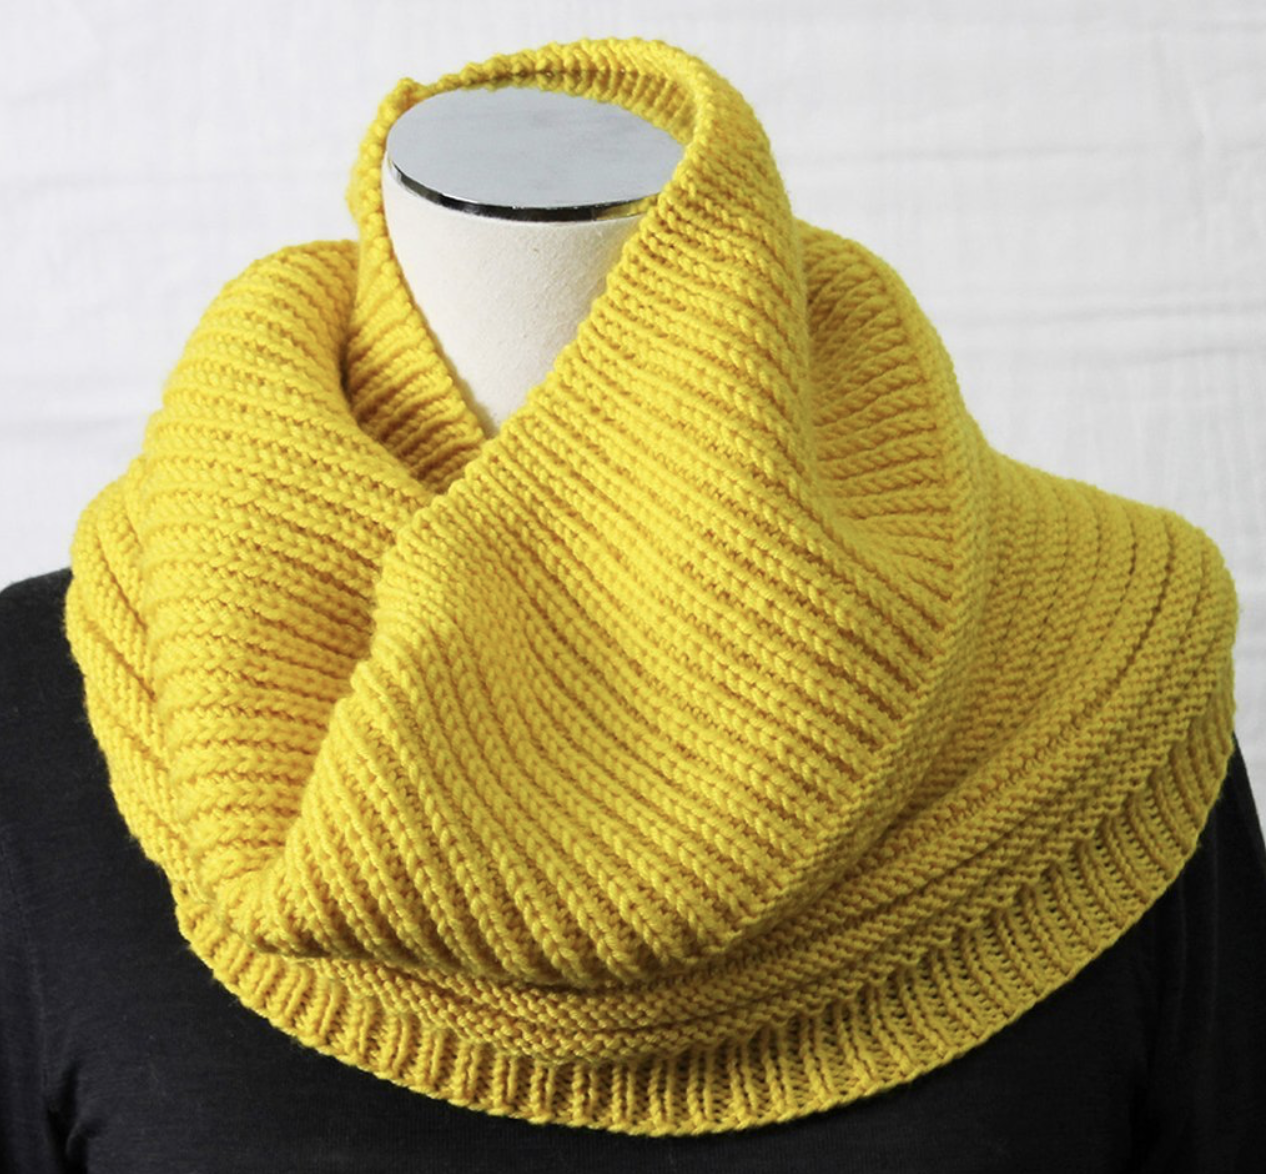 Bellissimo - TX186 COWL - Scarf Pattern